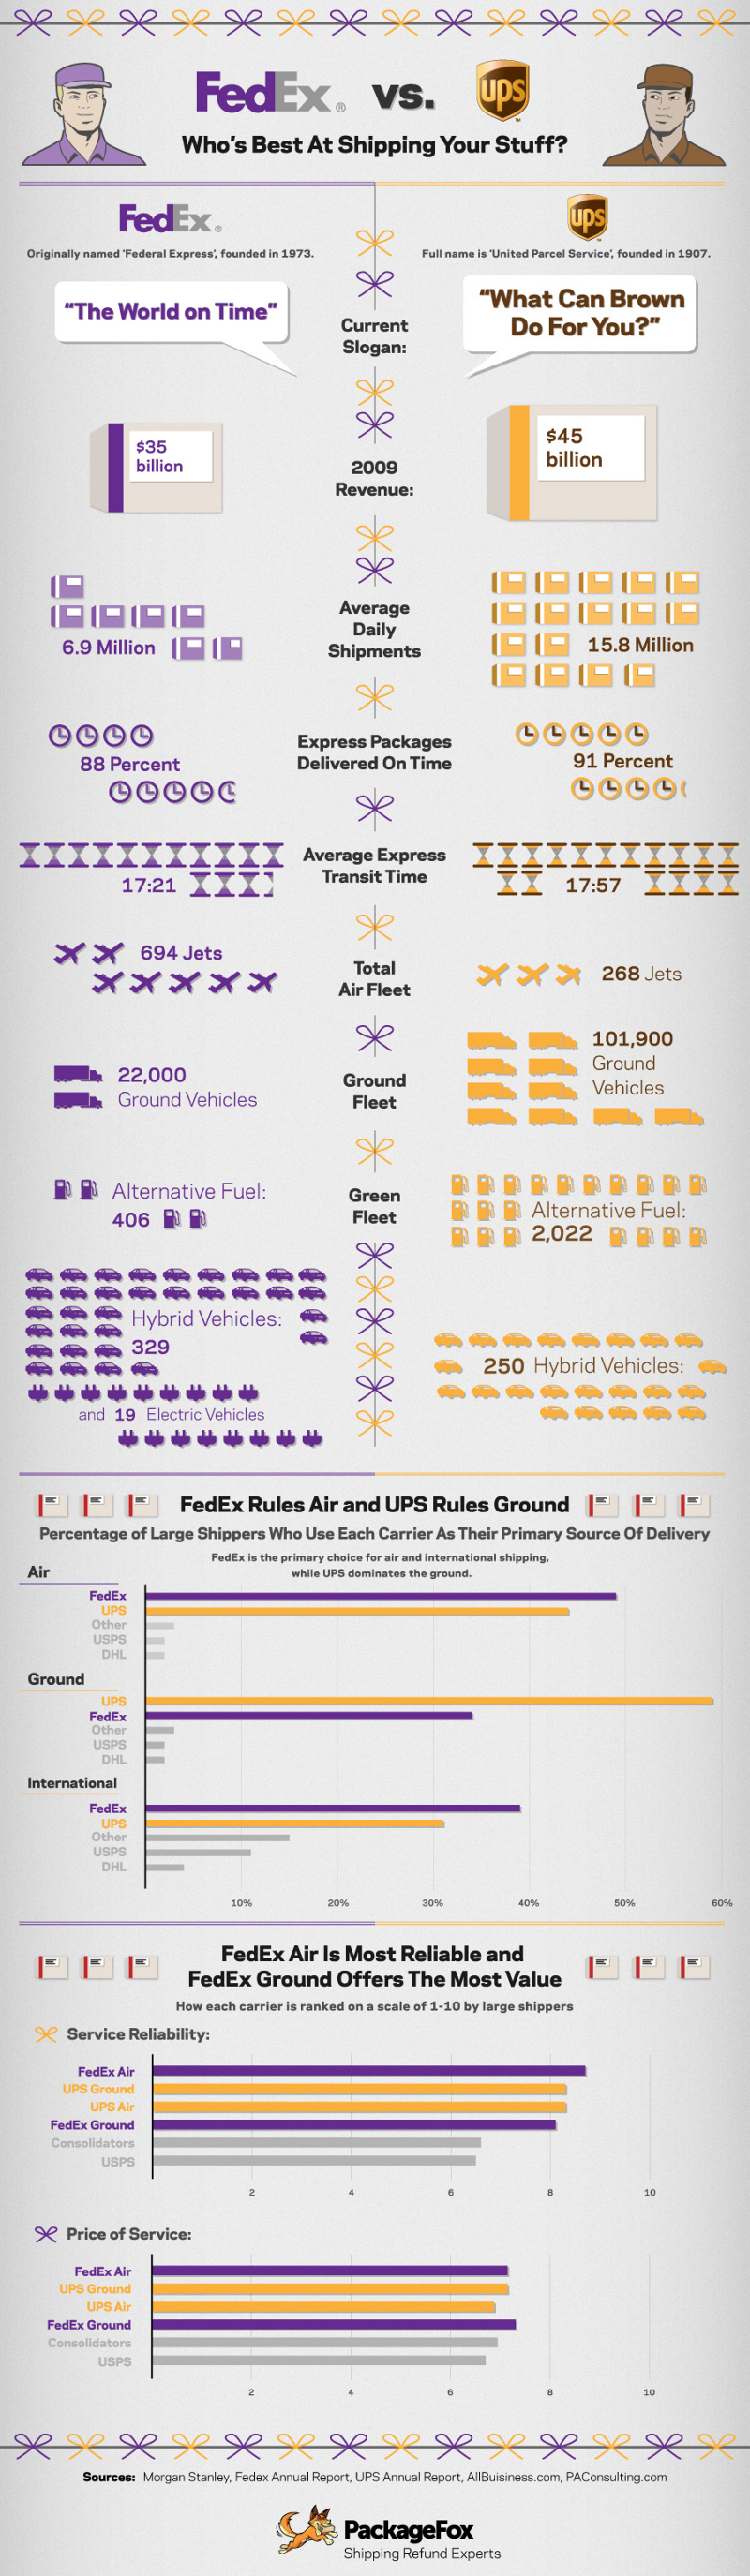 Fedex vs. UPS Comparison